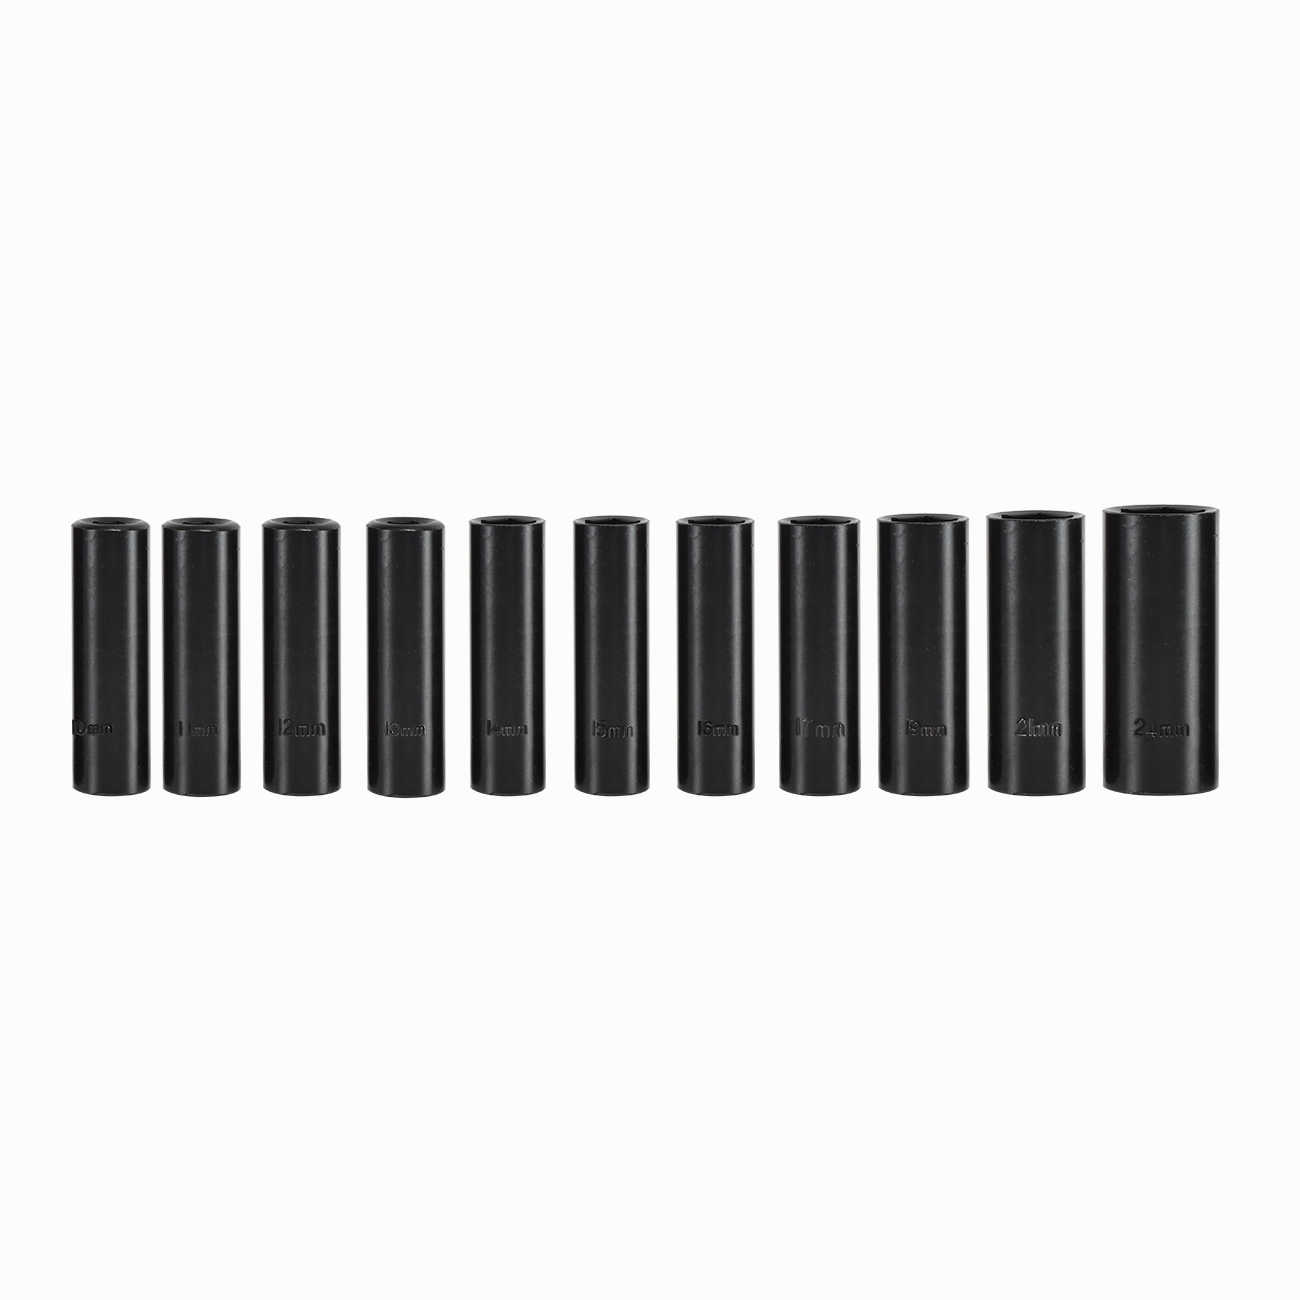 Hiltex 1/2' Deep Impact Sockets | 12pc Metric Set 1/2' Dr Air Power Carbon Steel Case